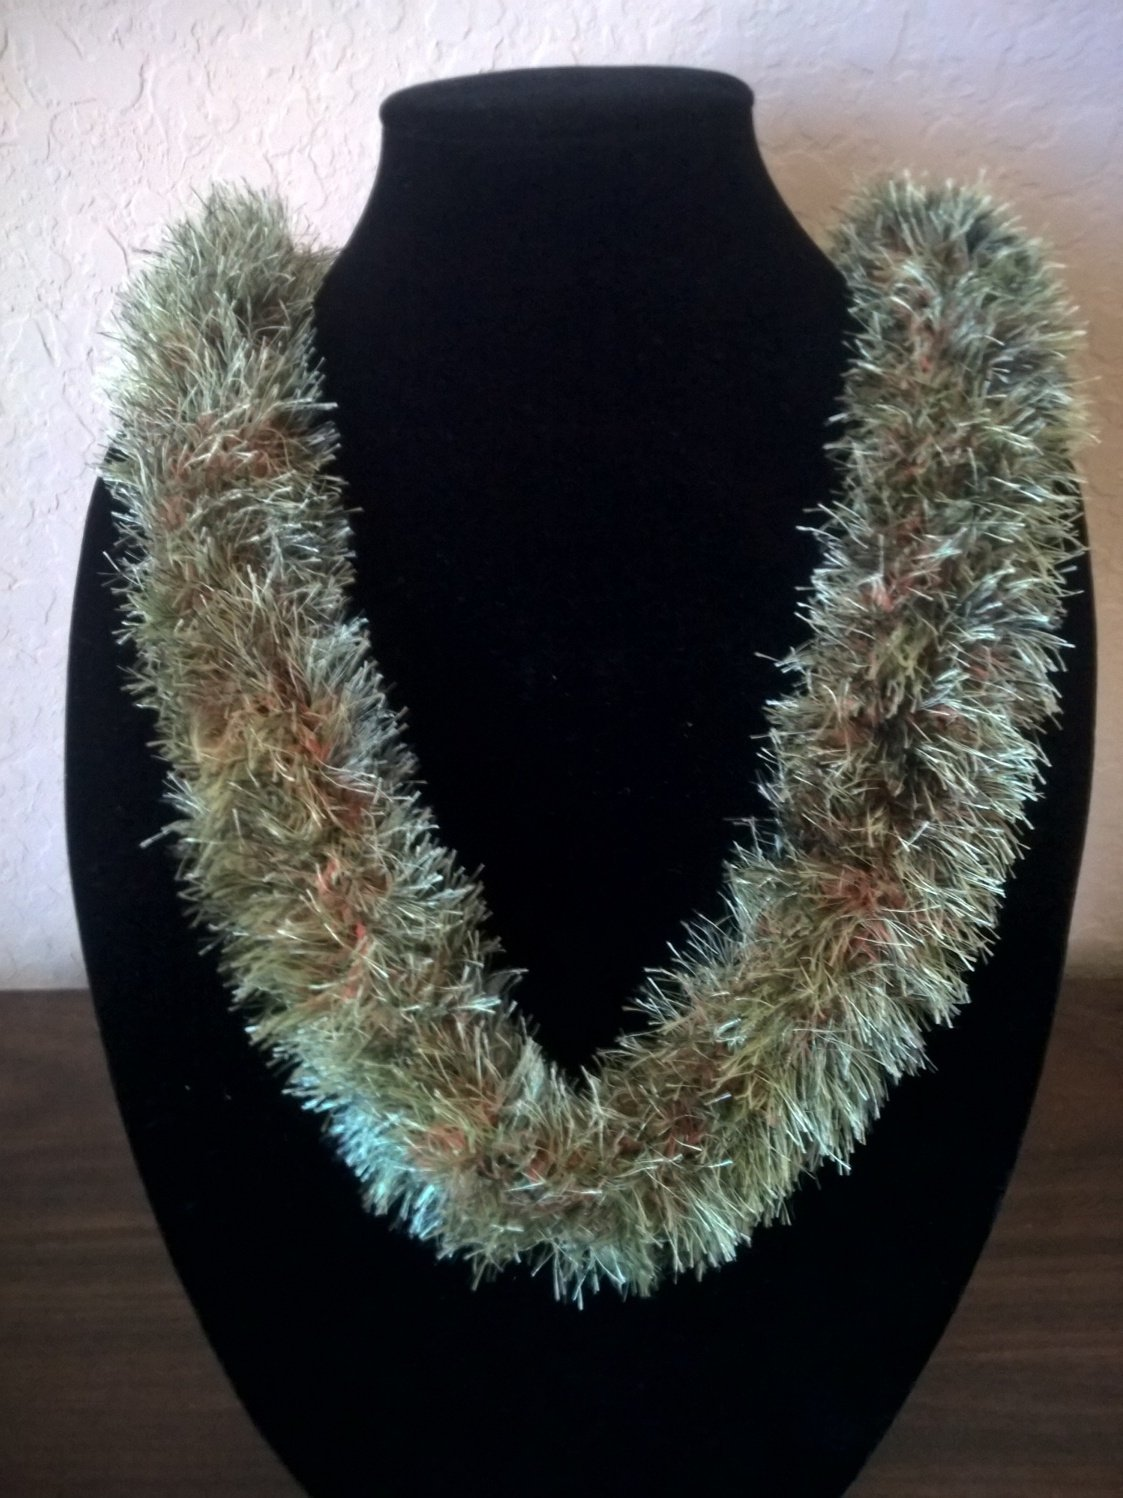 Hawaiian lei hat band knit w/ green brown eyelash yarn